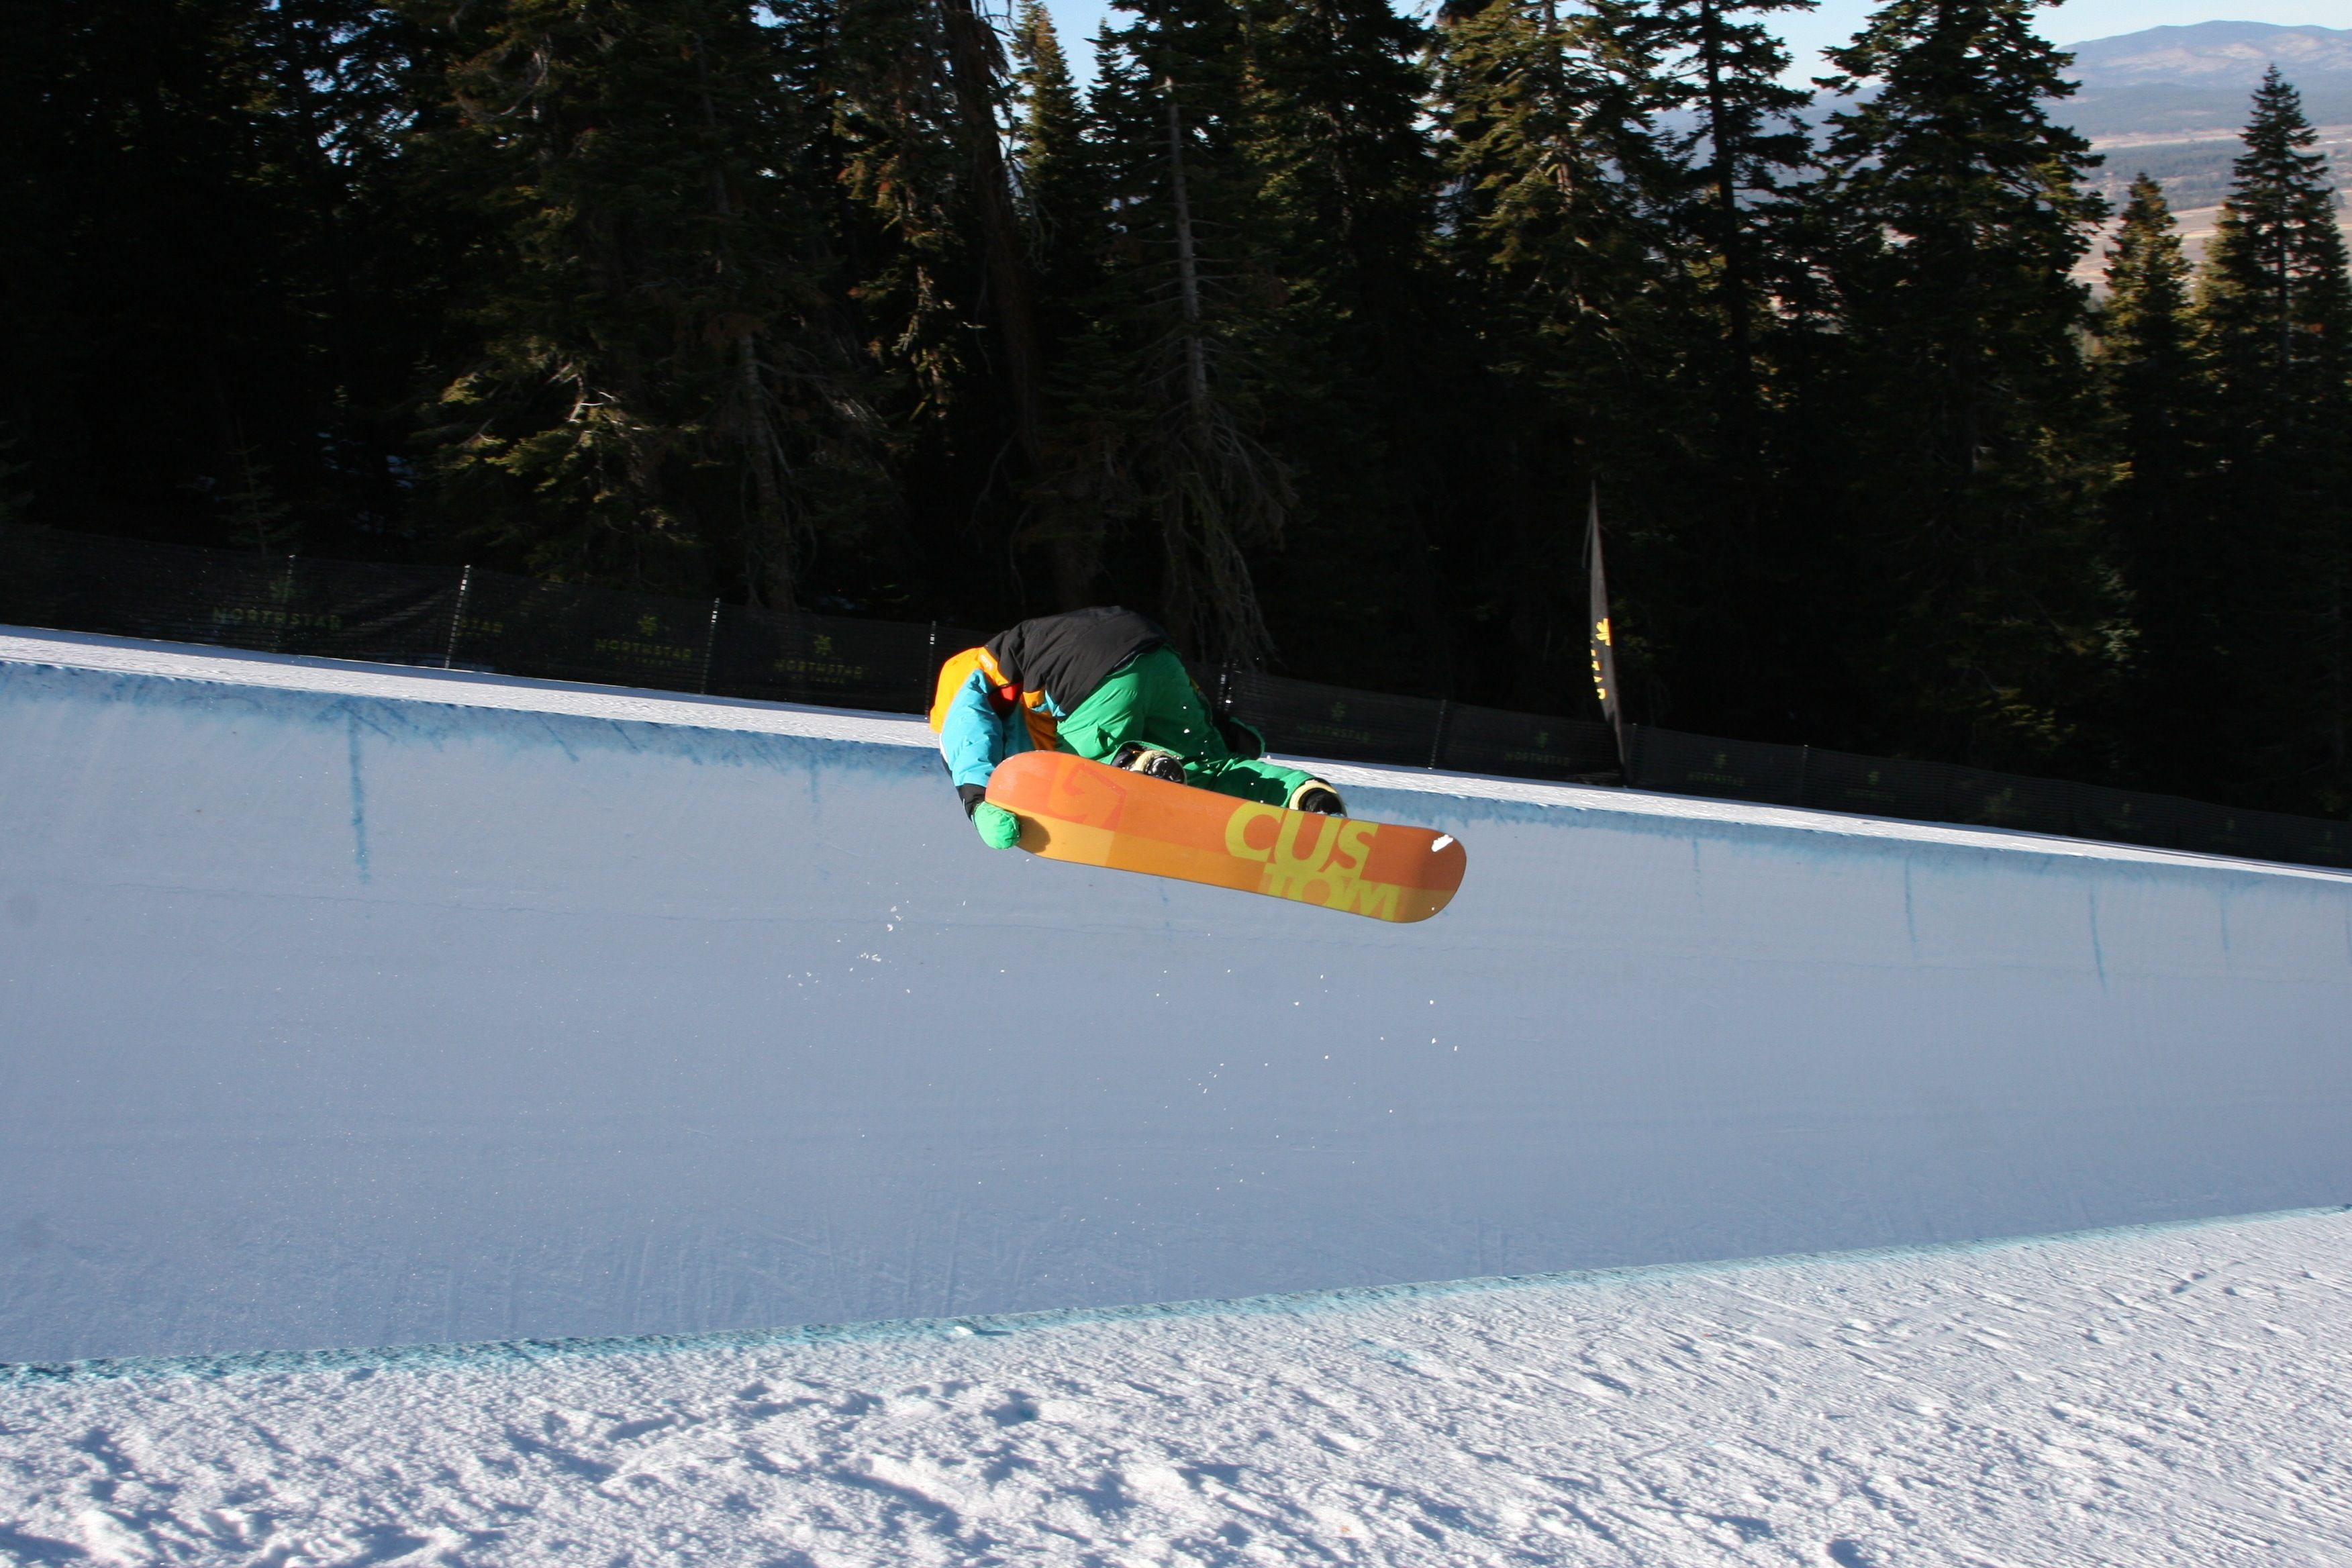 Northstar snow park -   Discover Your Adventure  -  Be one of the first to personalize your next experience   www.arctivity.com